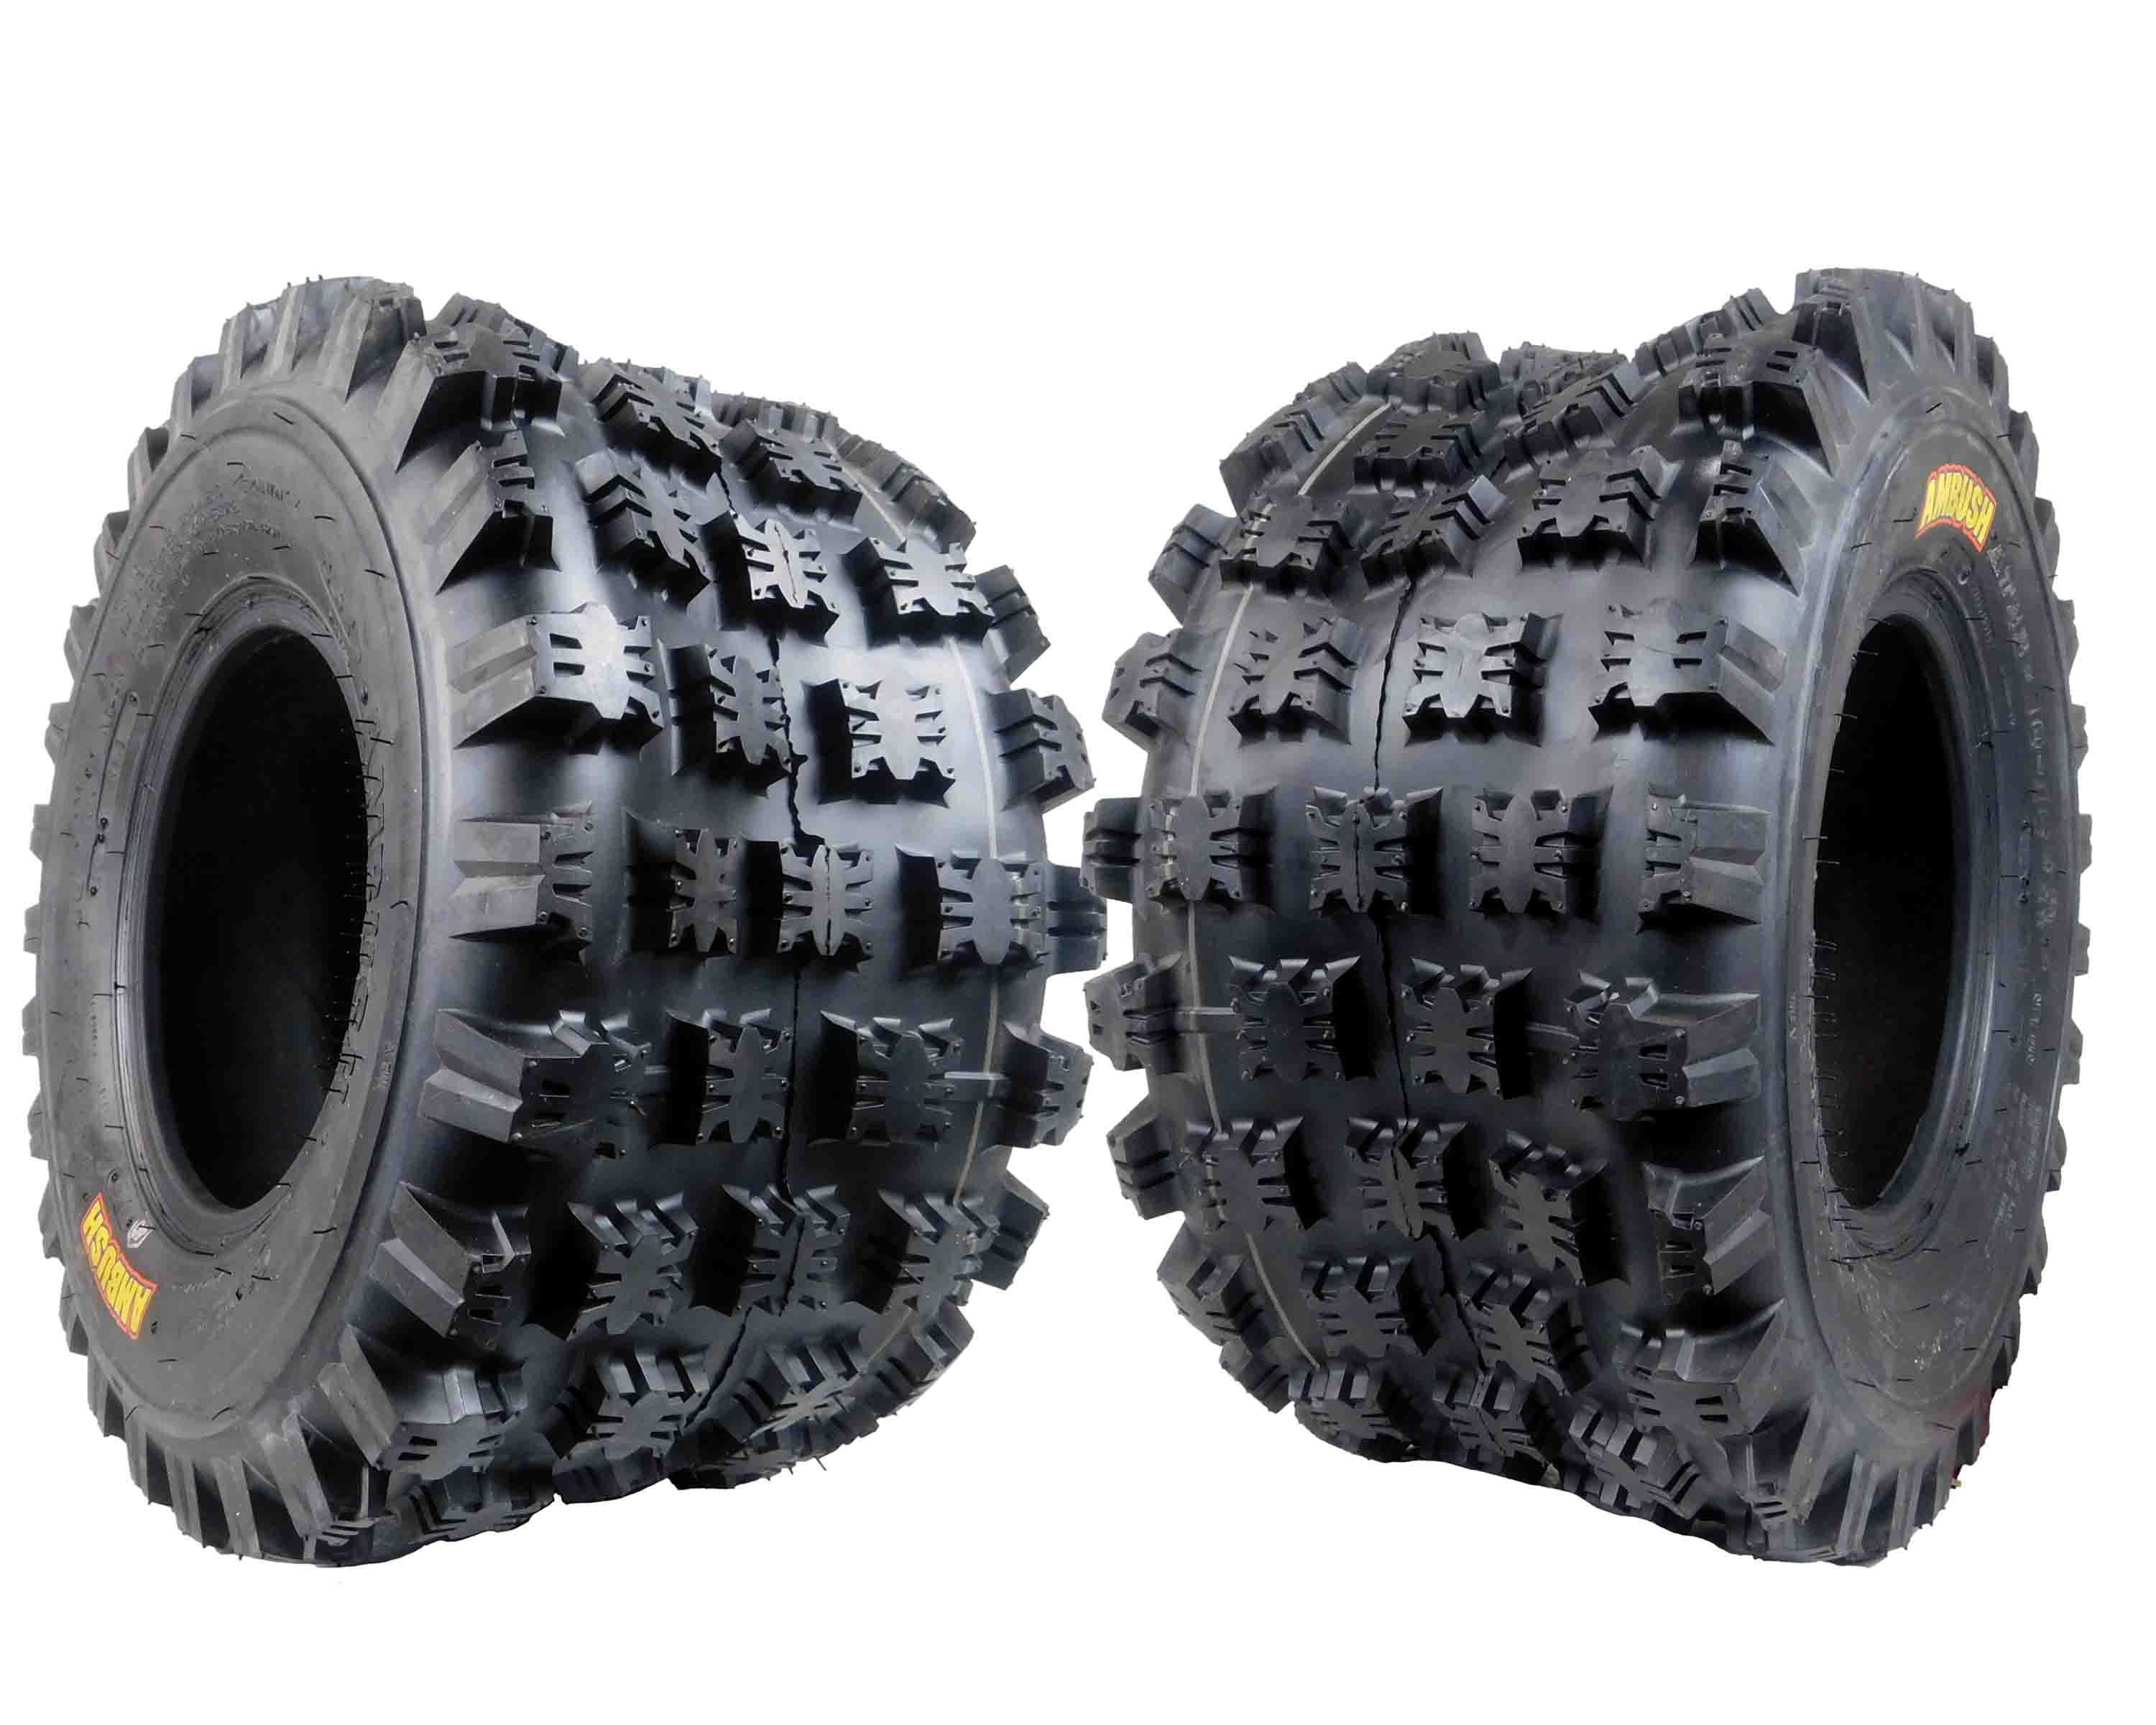 Ambush-22x10-10-ATV-Tire-2-Pack-Rear-4ply-image-1